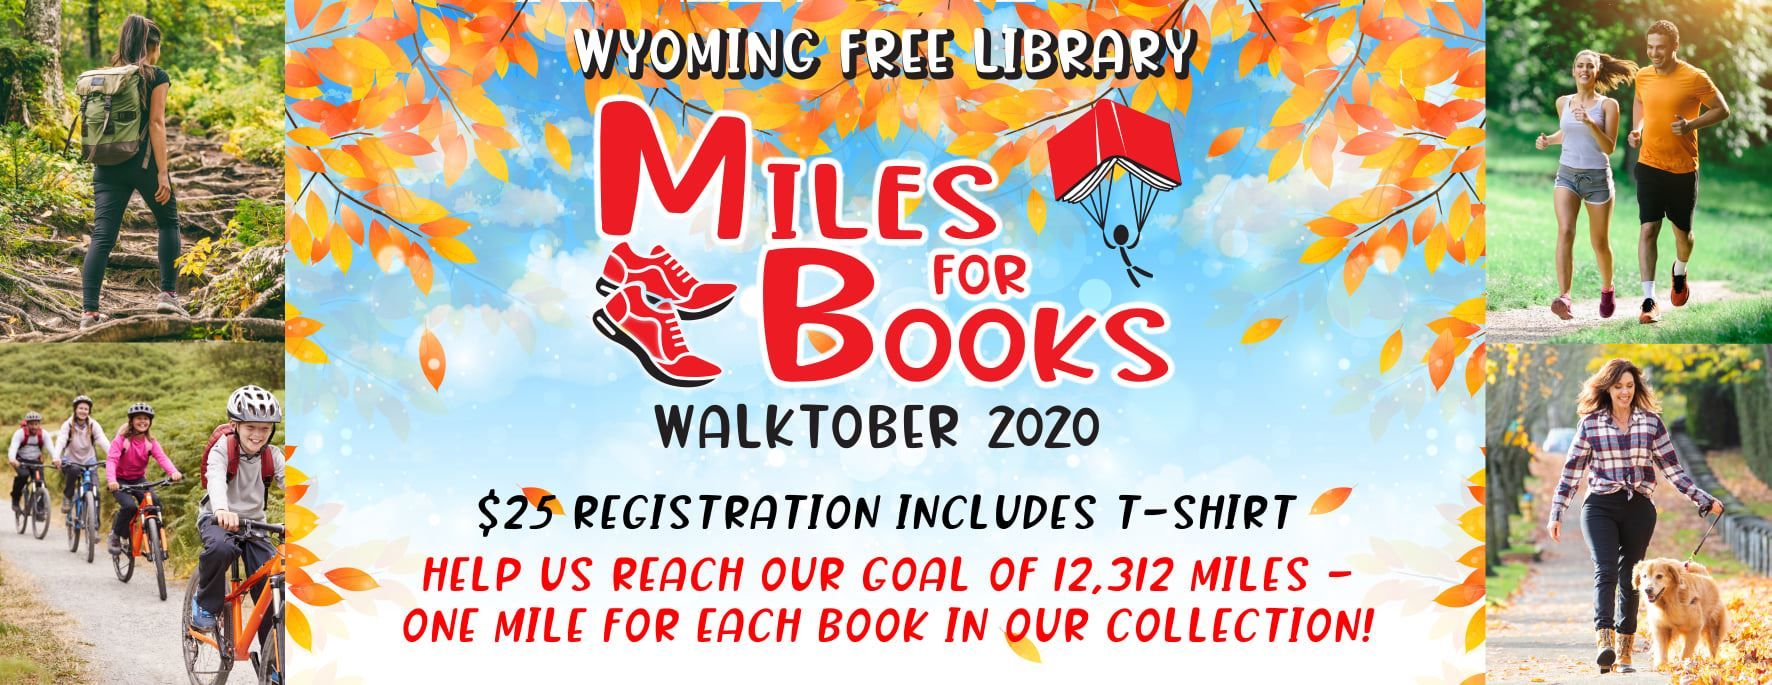 miles for books